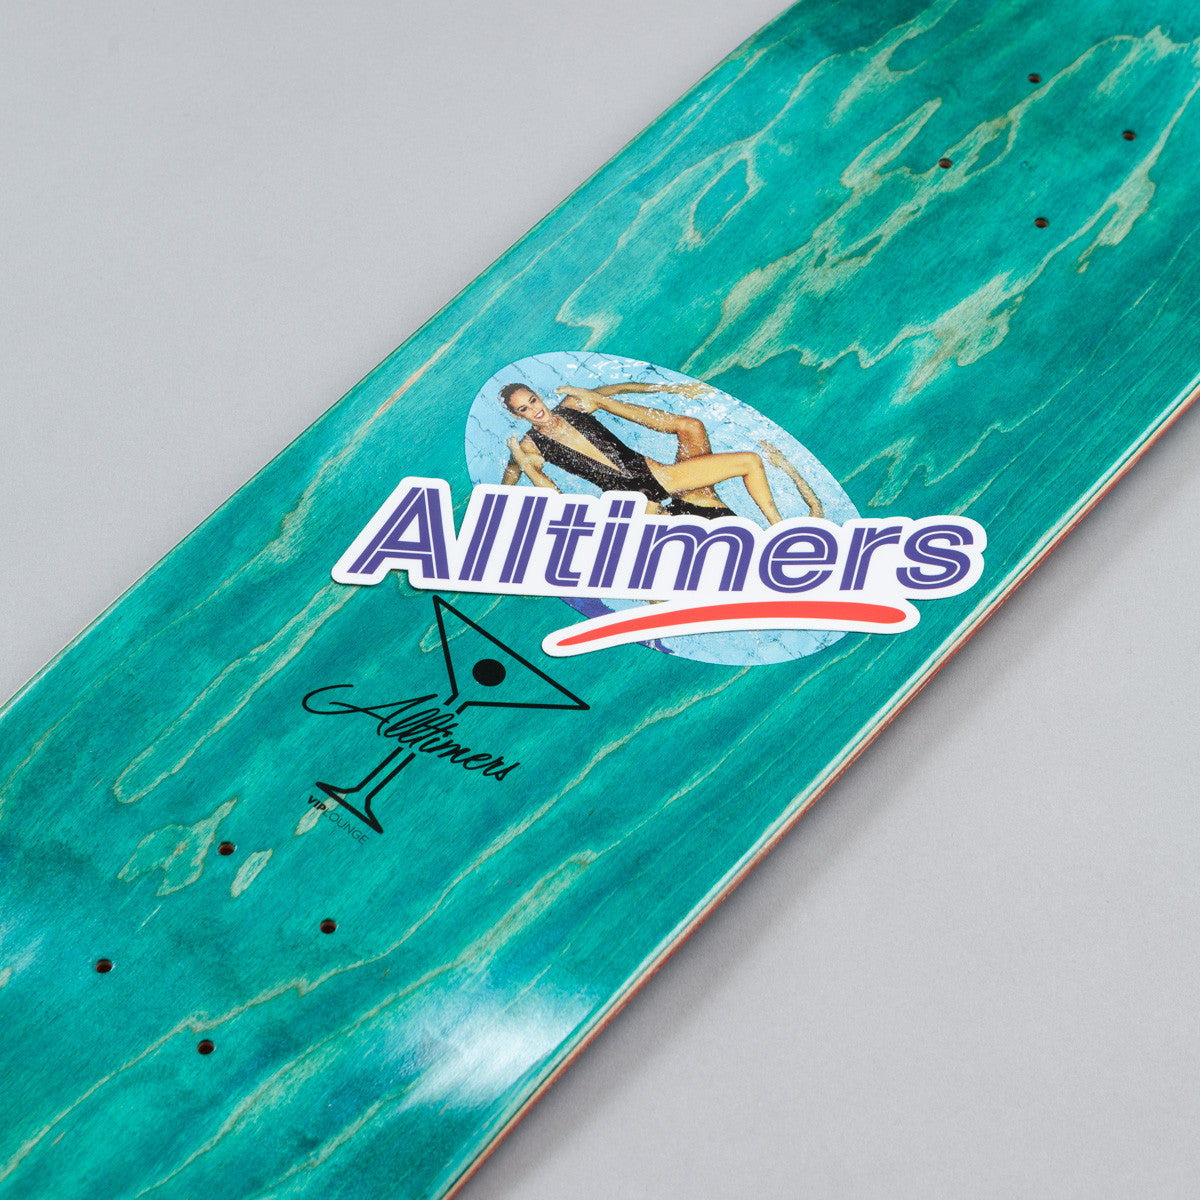 Alltimers Soaked Deck - 8.3""